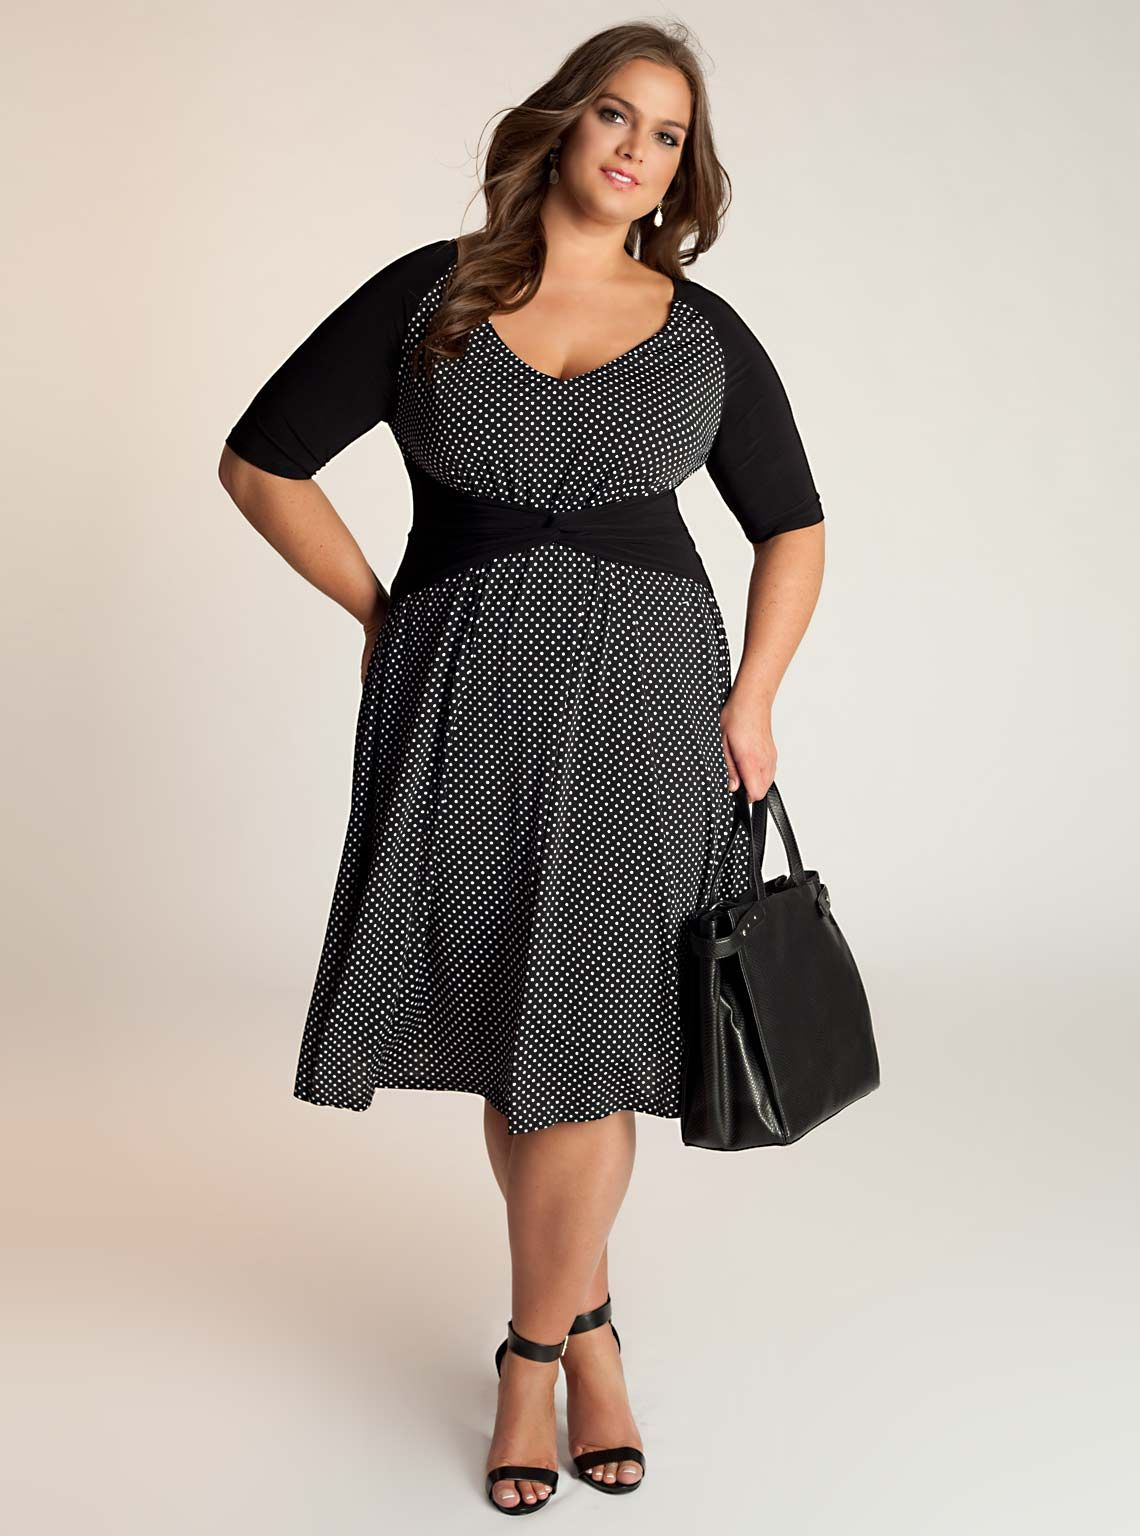 plus size woman clothing high fashion dresses for the